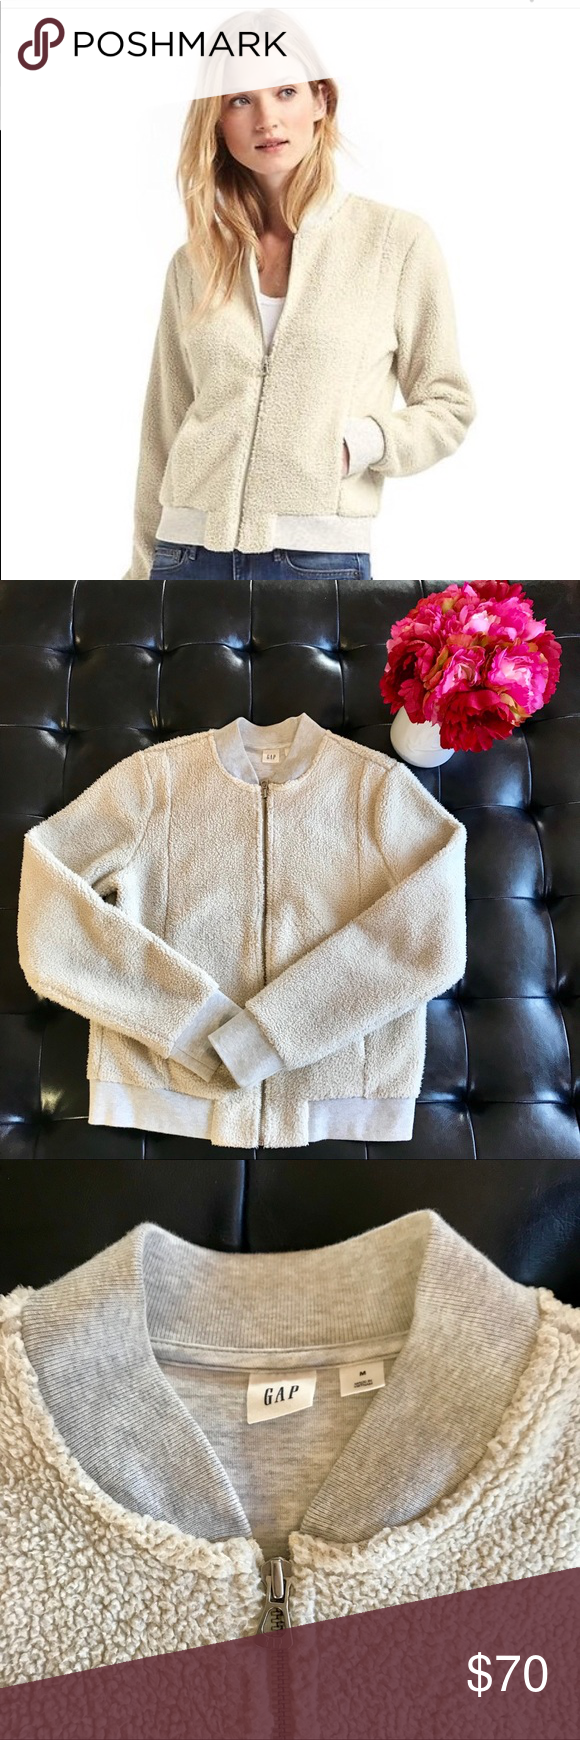 11733657 Gap Sherpa Bomber Jacket This cozy, cream colored retro jacket has only  been worn 2-3 times and is in EUC! Size is Medium but would fit a Small, ...